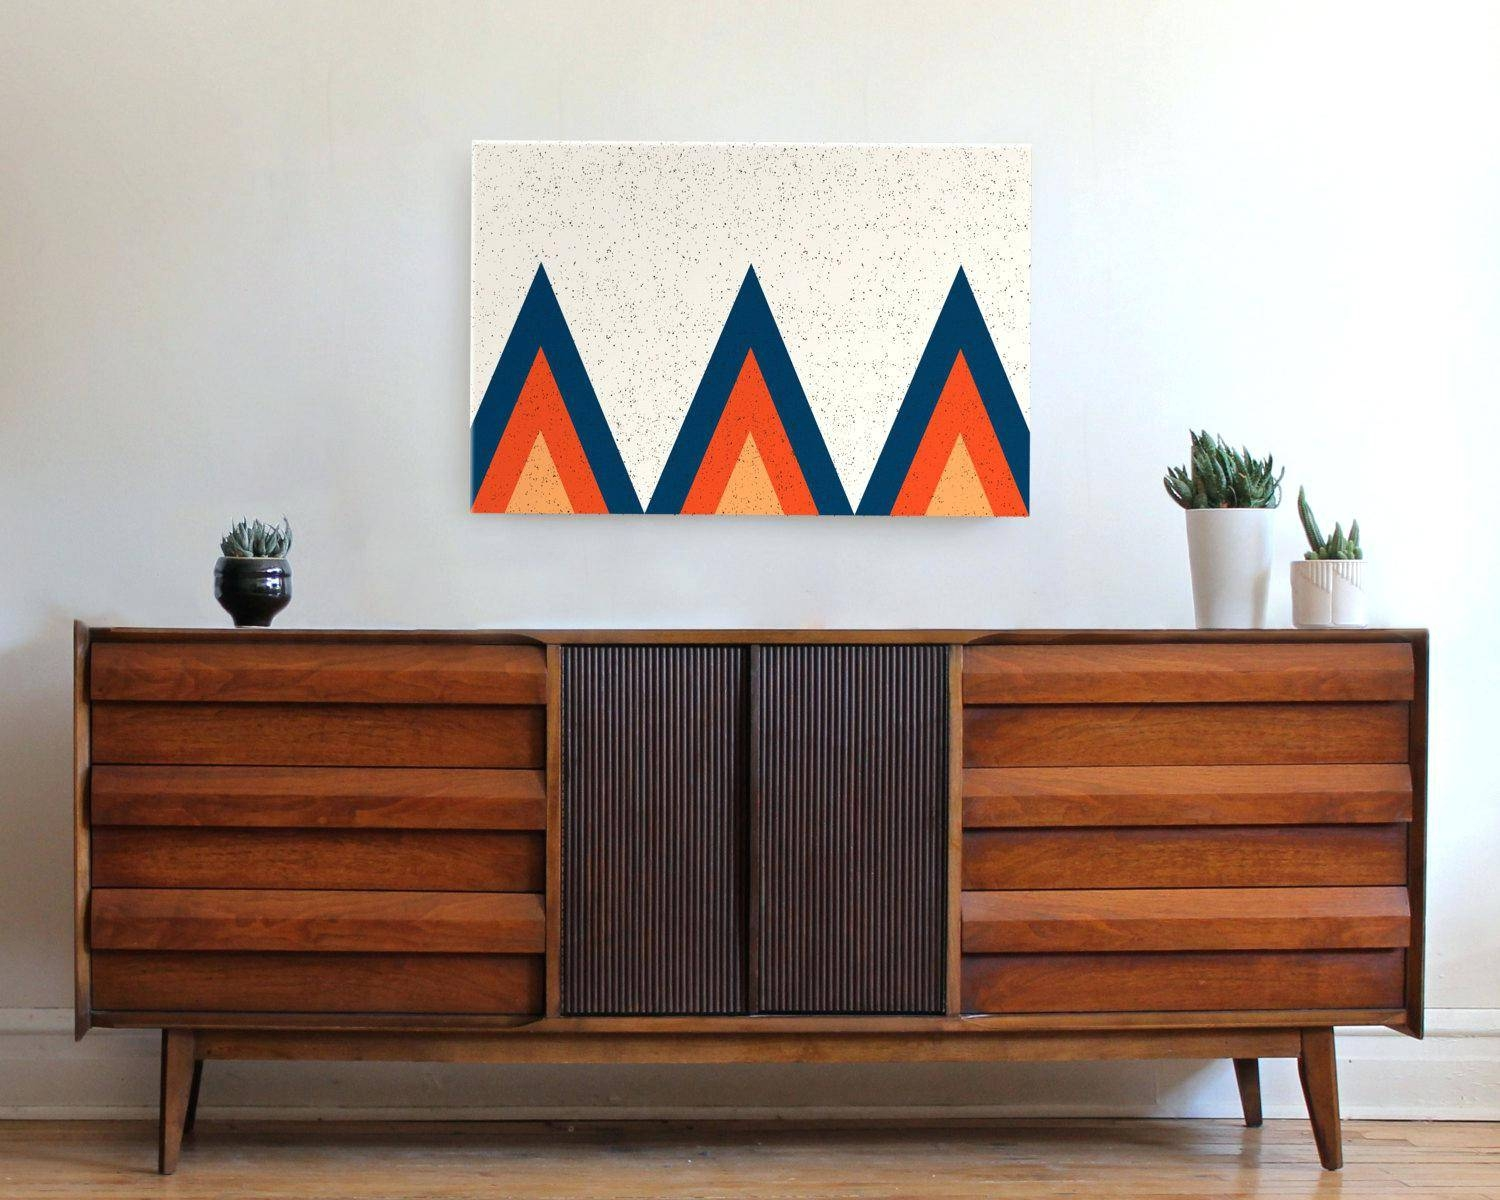 Wall Decor : Terrific Mid Century Modern Wall Art Photo Within Most Popular Modern Wall Art For Sale (View 19 of 20)